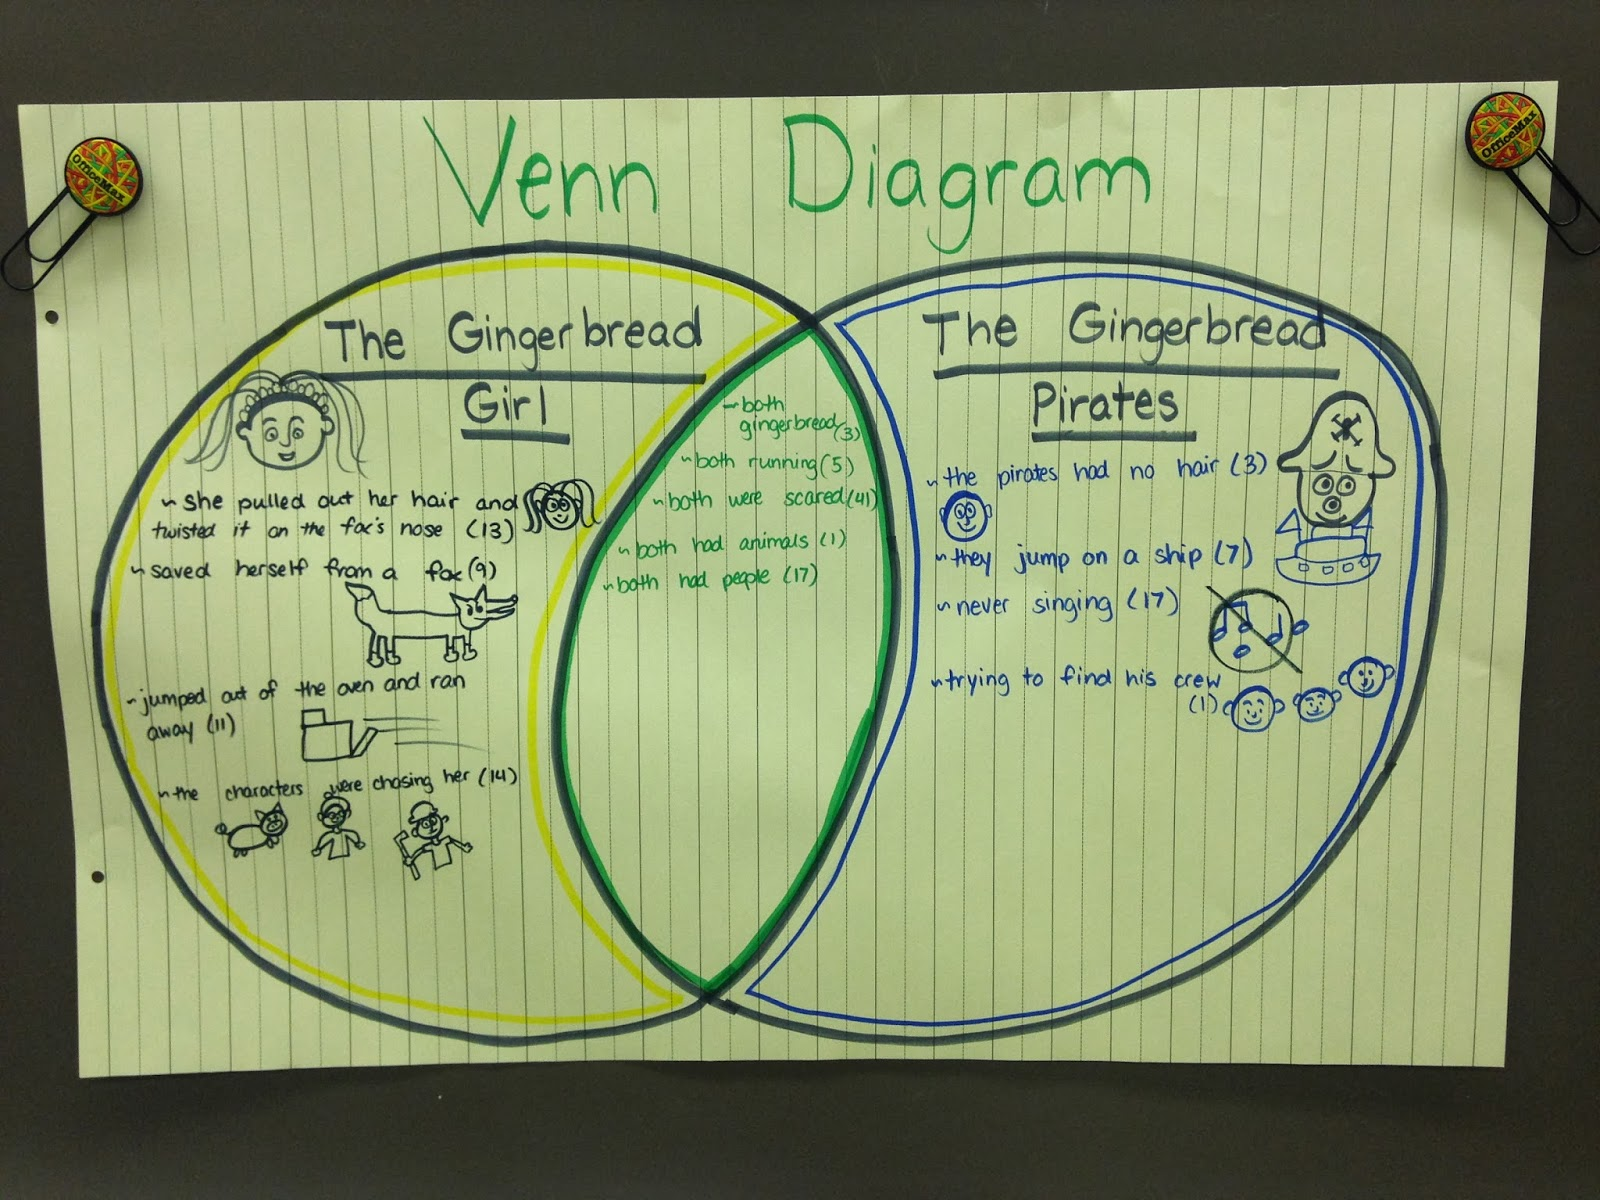 Kindergarten is the best place on earth compare and contrast compare and contrast and i introduced the class to the venn diagram here is a picture of the comparison of the two books the gingerbread girl and the ccuart Gallery